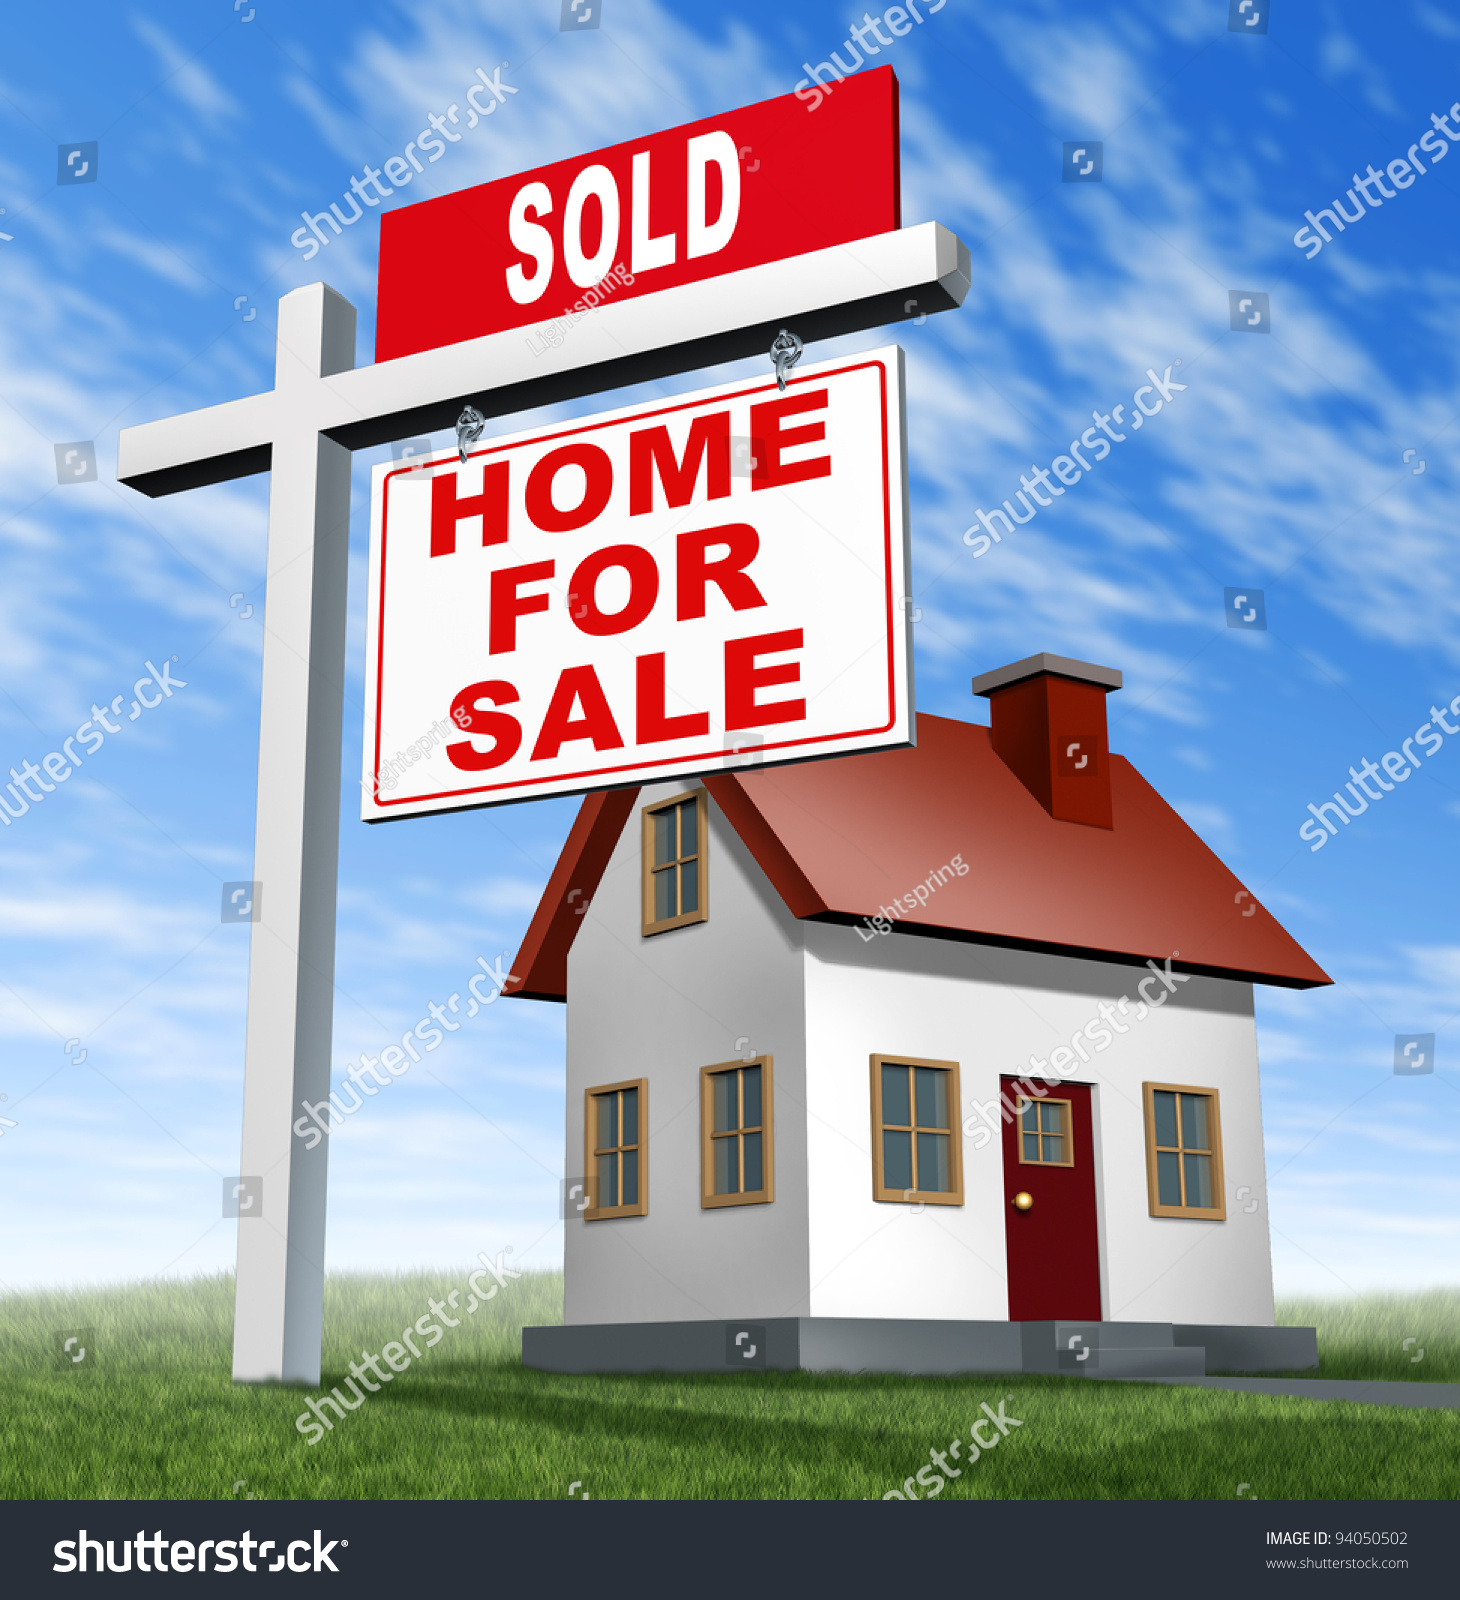 Z Homes For Sale Stock Photo Sold Home For Sale Sign And